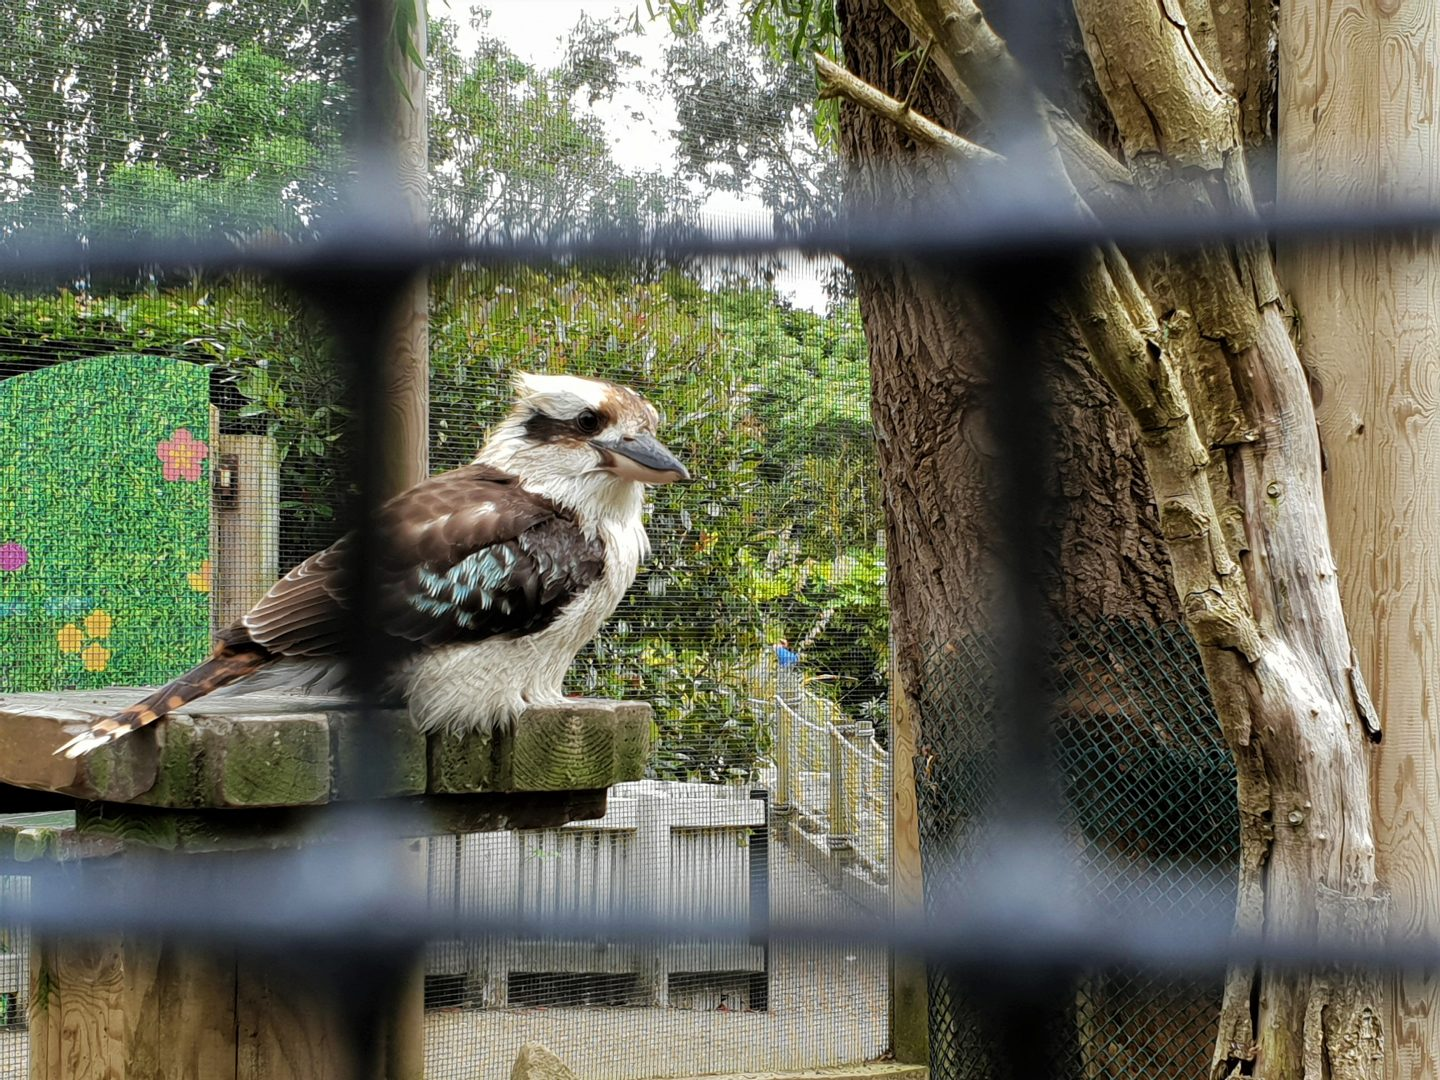 Kookaburra at Drusillas Park